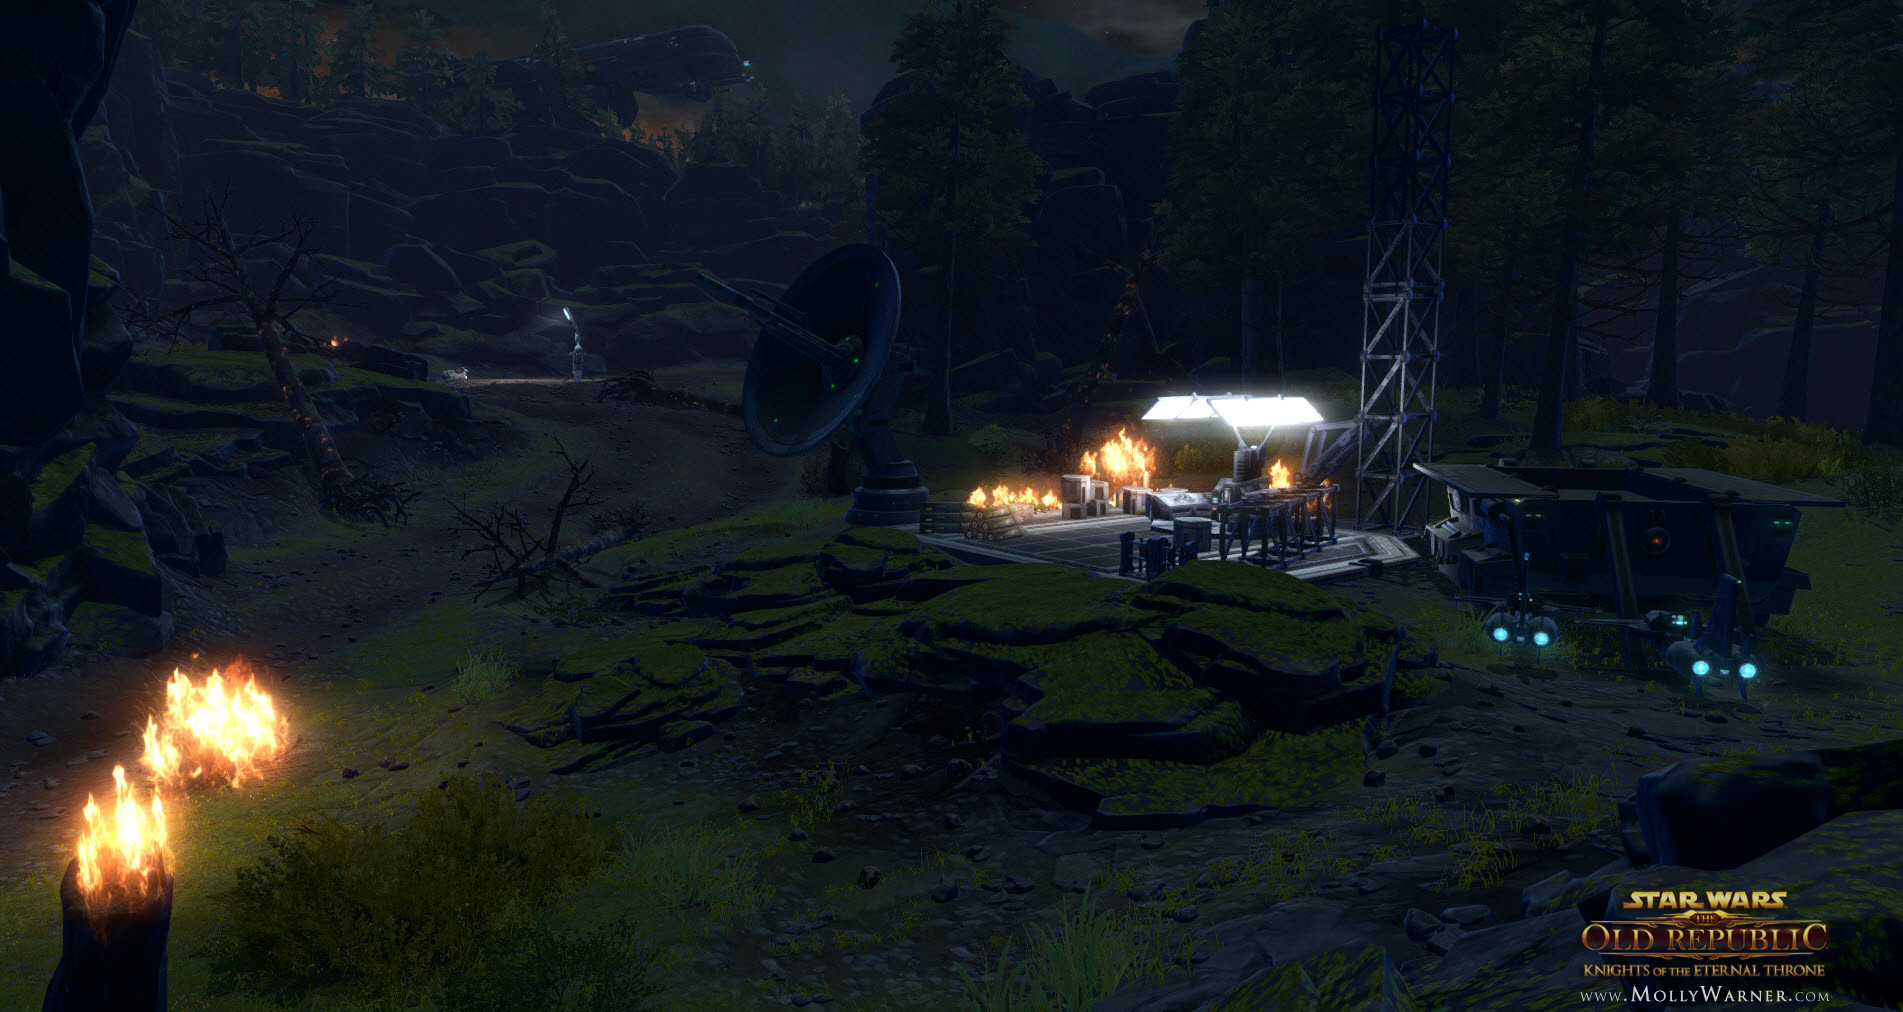 Enemy Zakuul forces starting setup of a temporary base